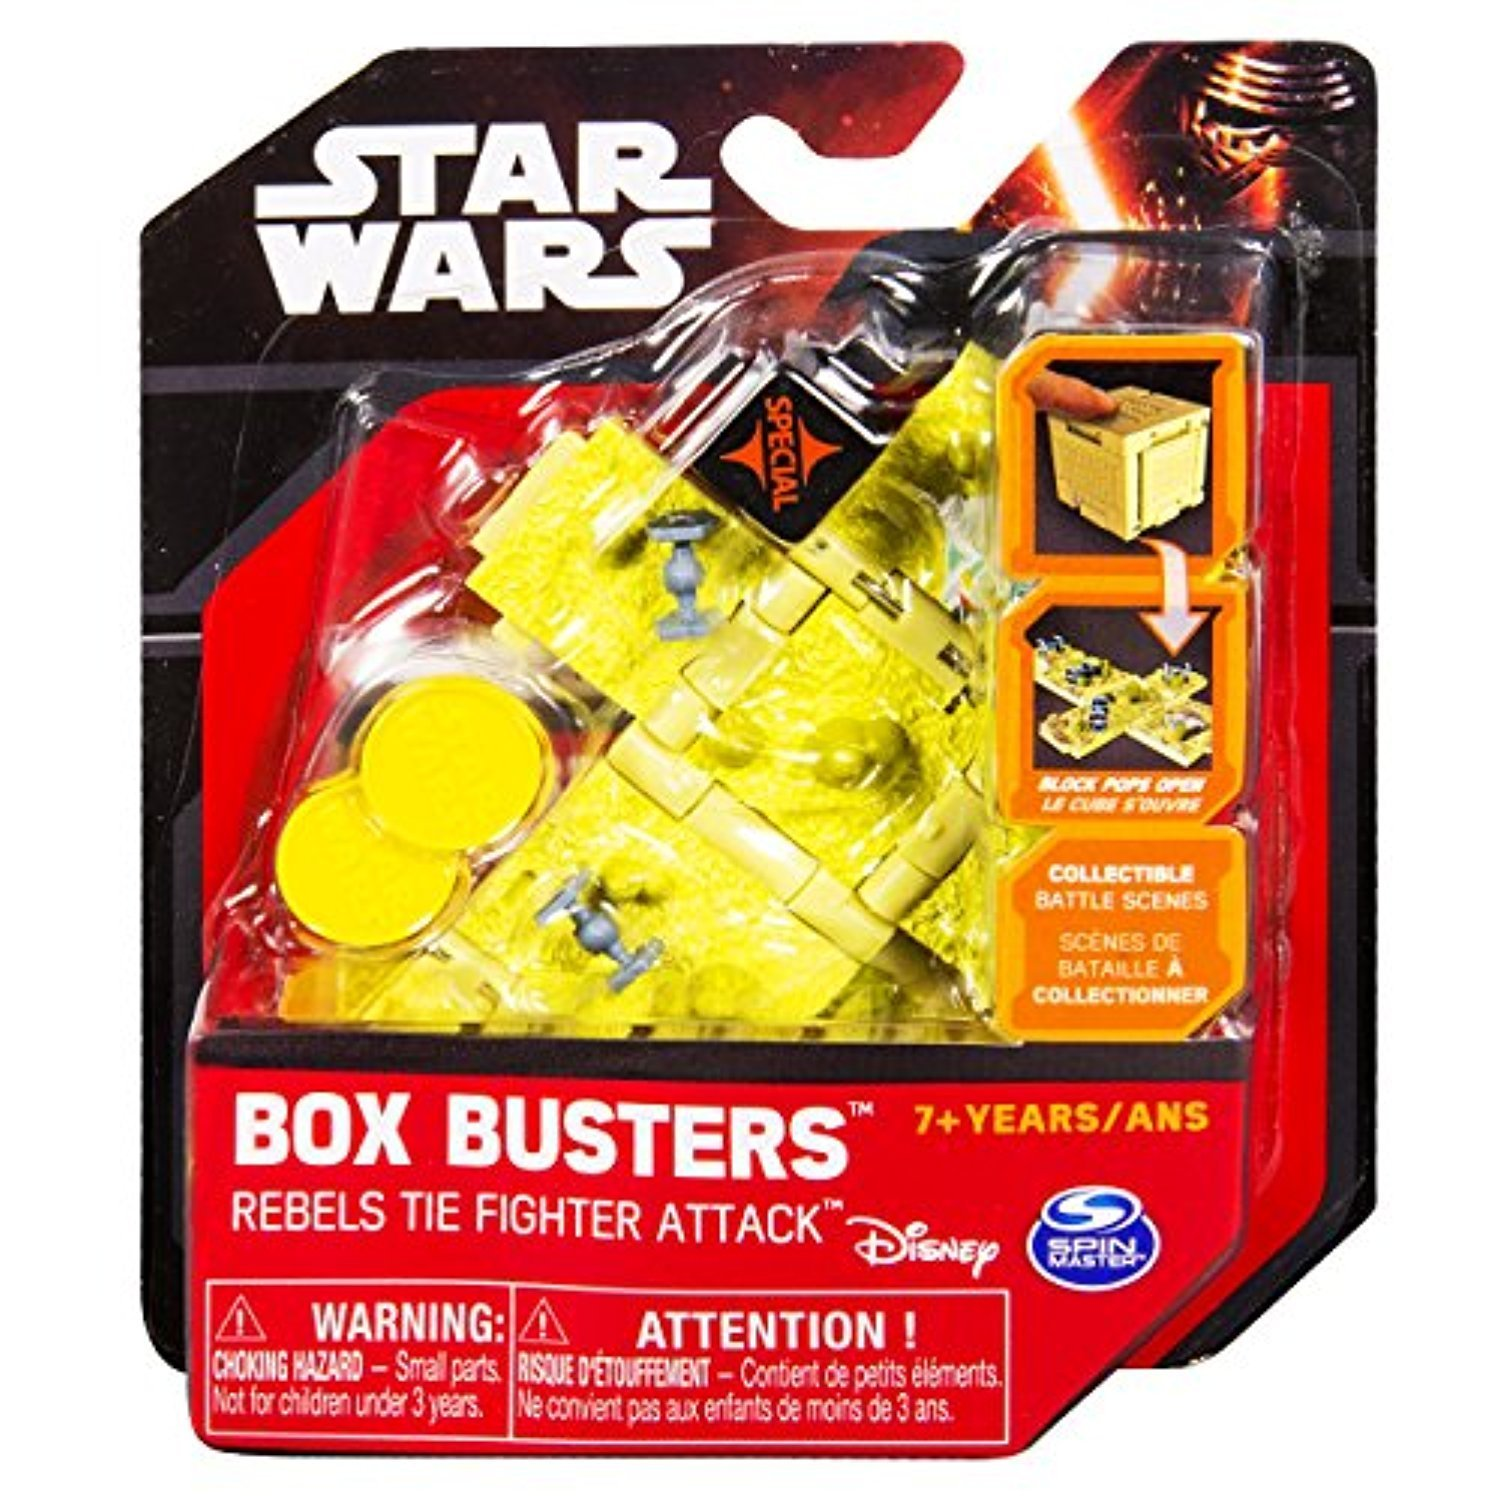 Star Wars Box Busters ? Rebels TIE Fighter Attack